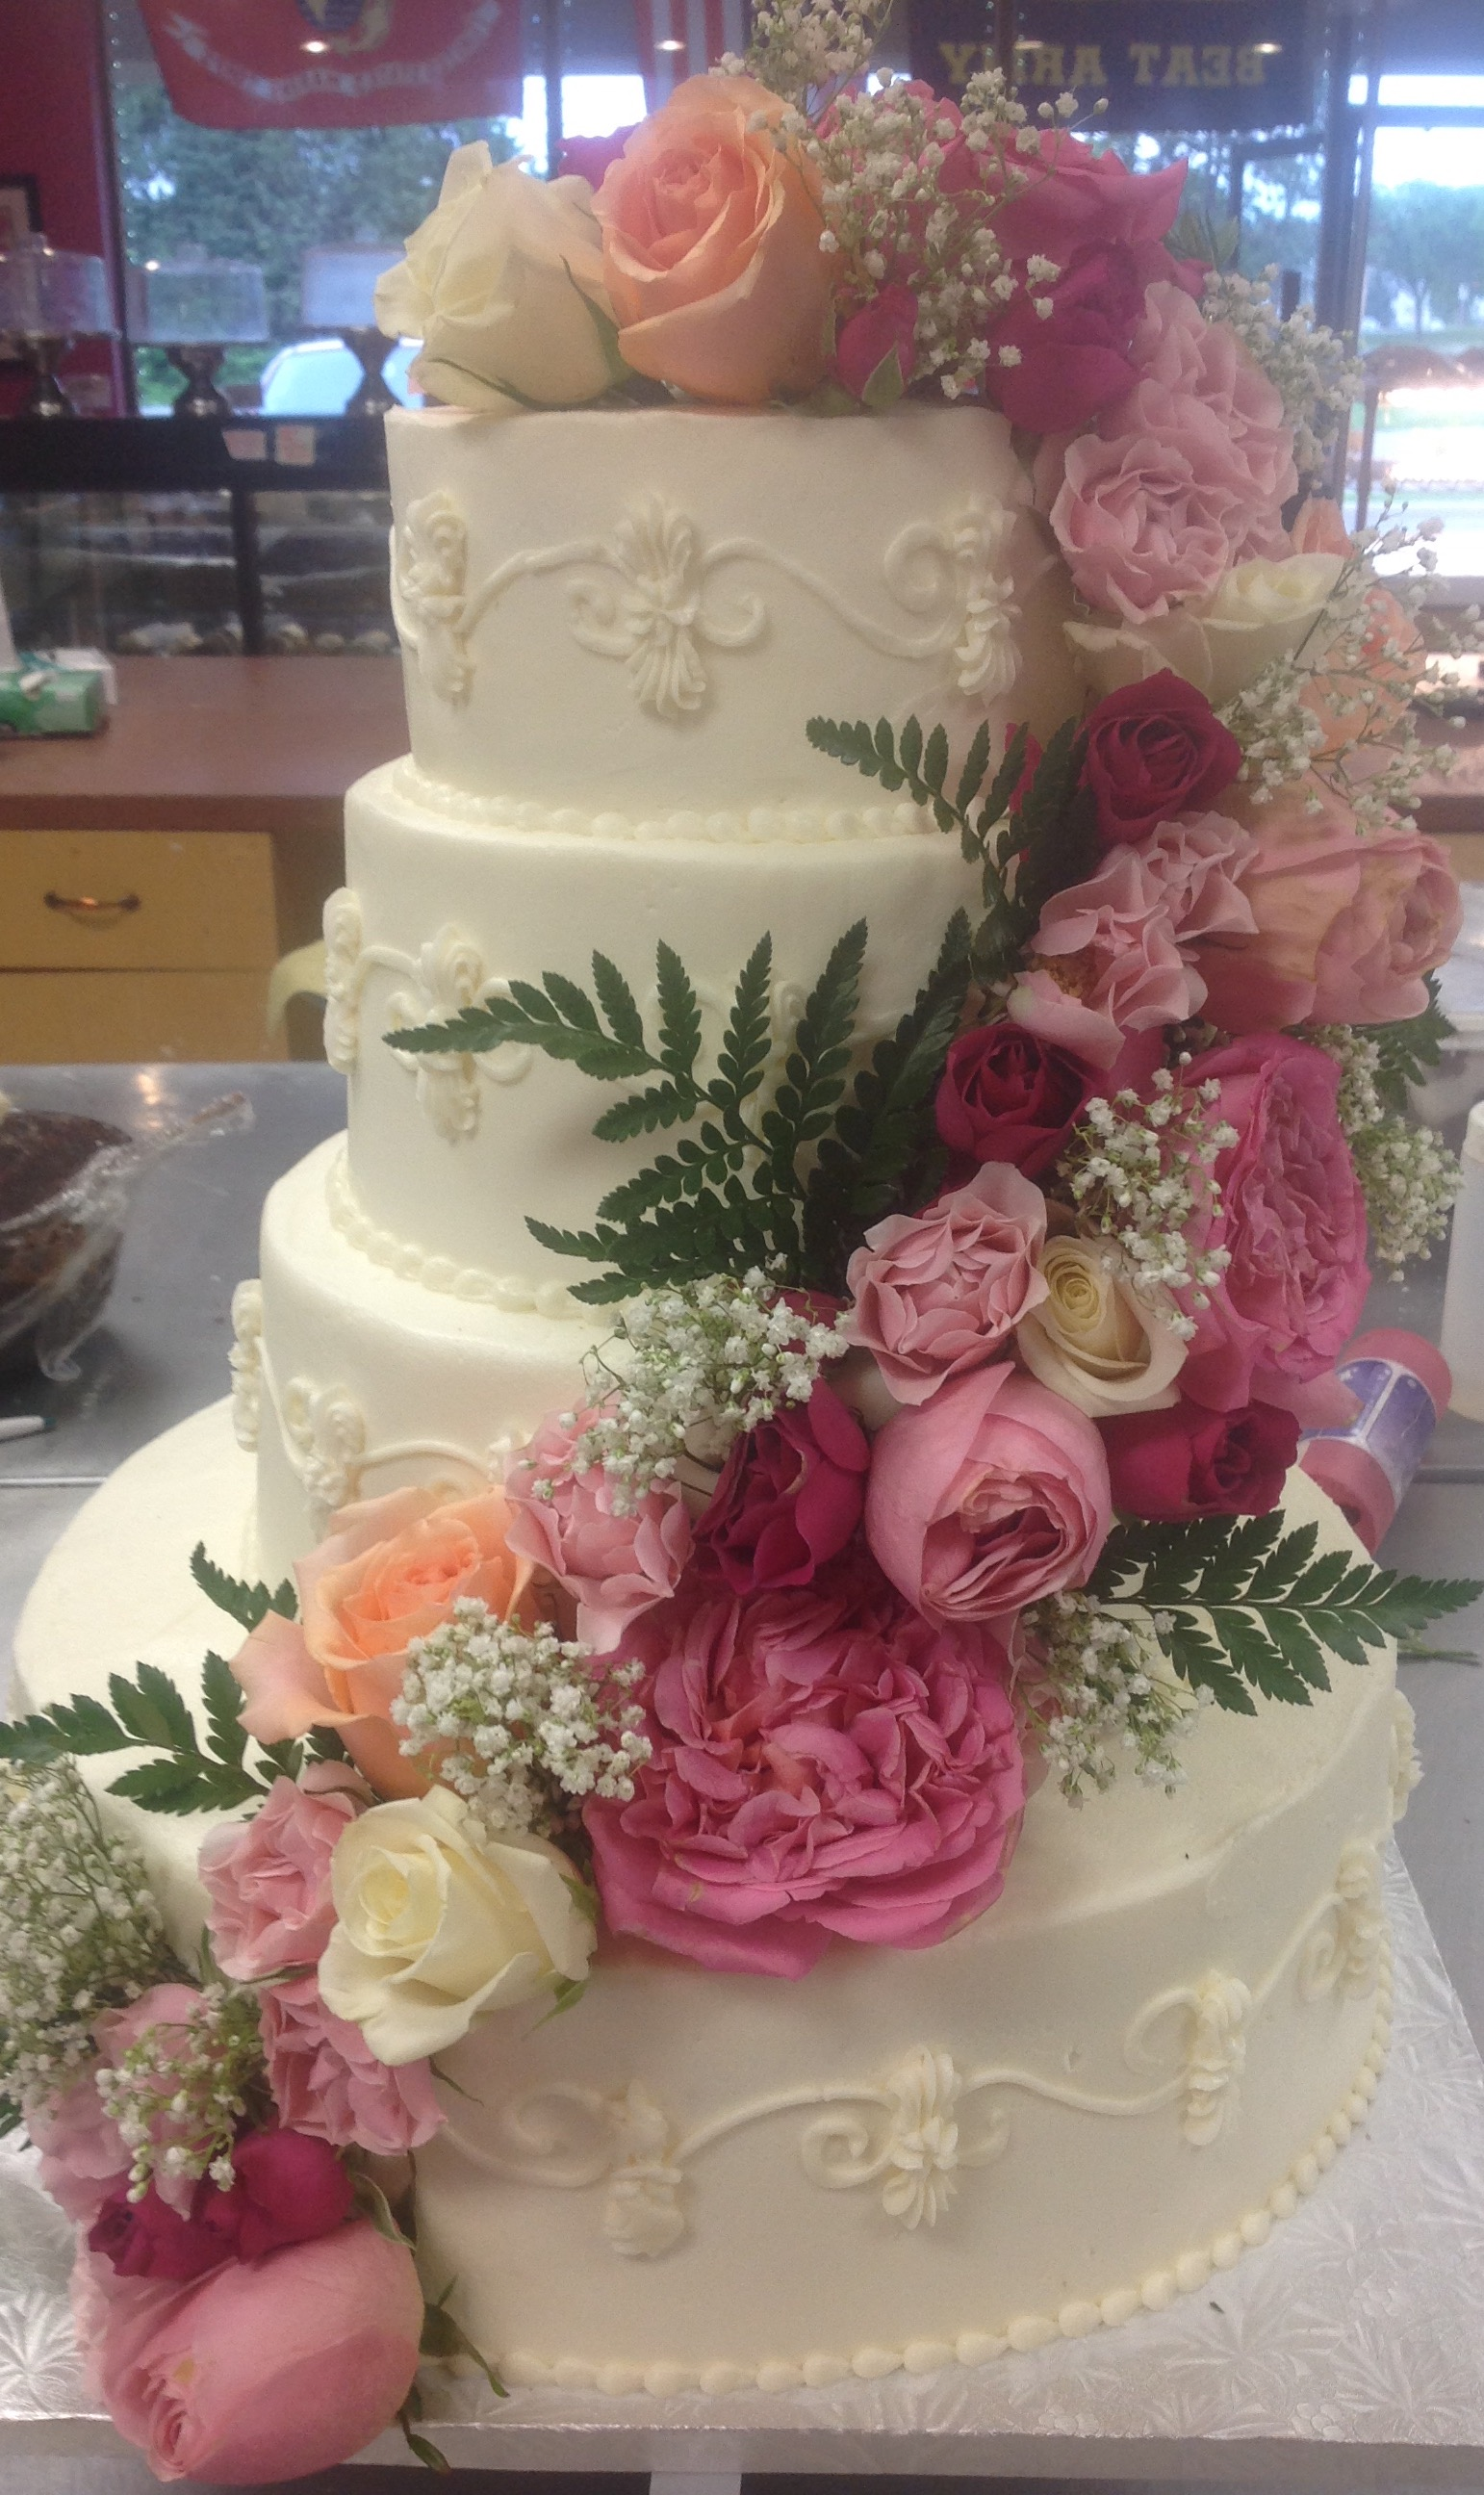 Wedding cakes at Dolce and Biscotti Italian Bakery